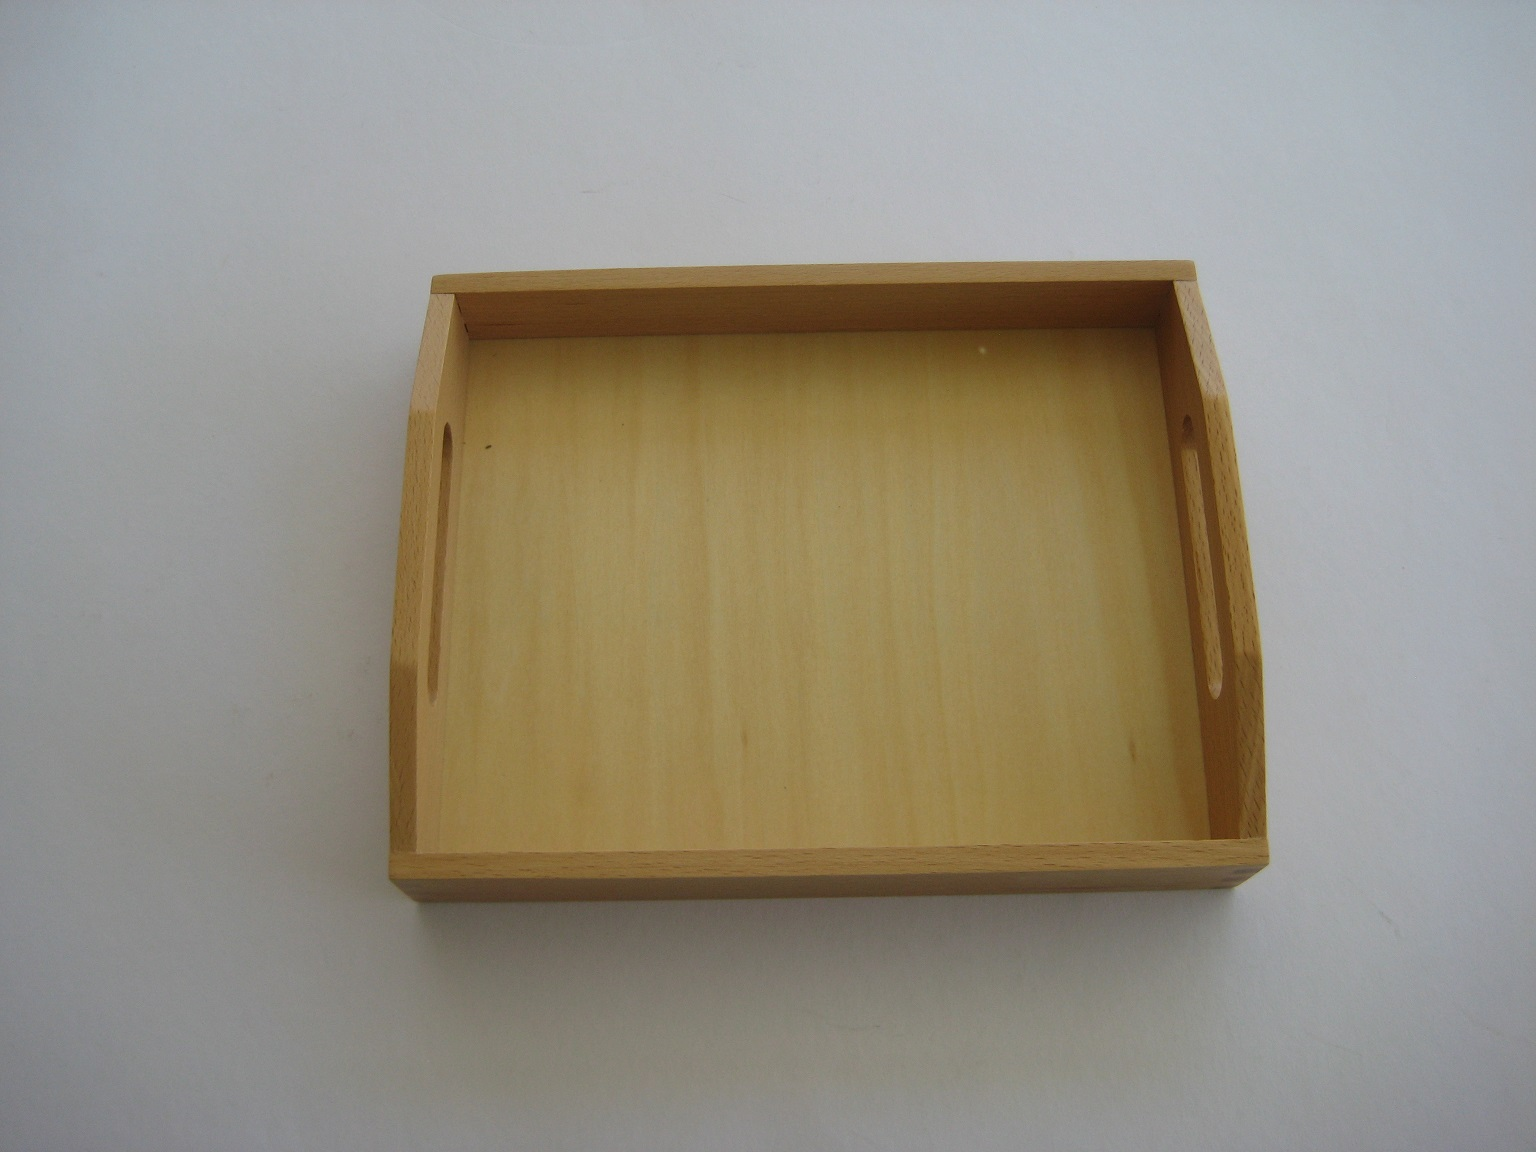 small-wooden-tray-1.jpg